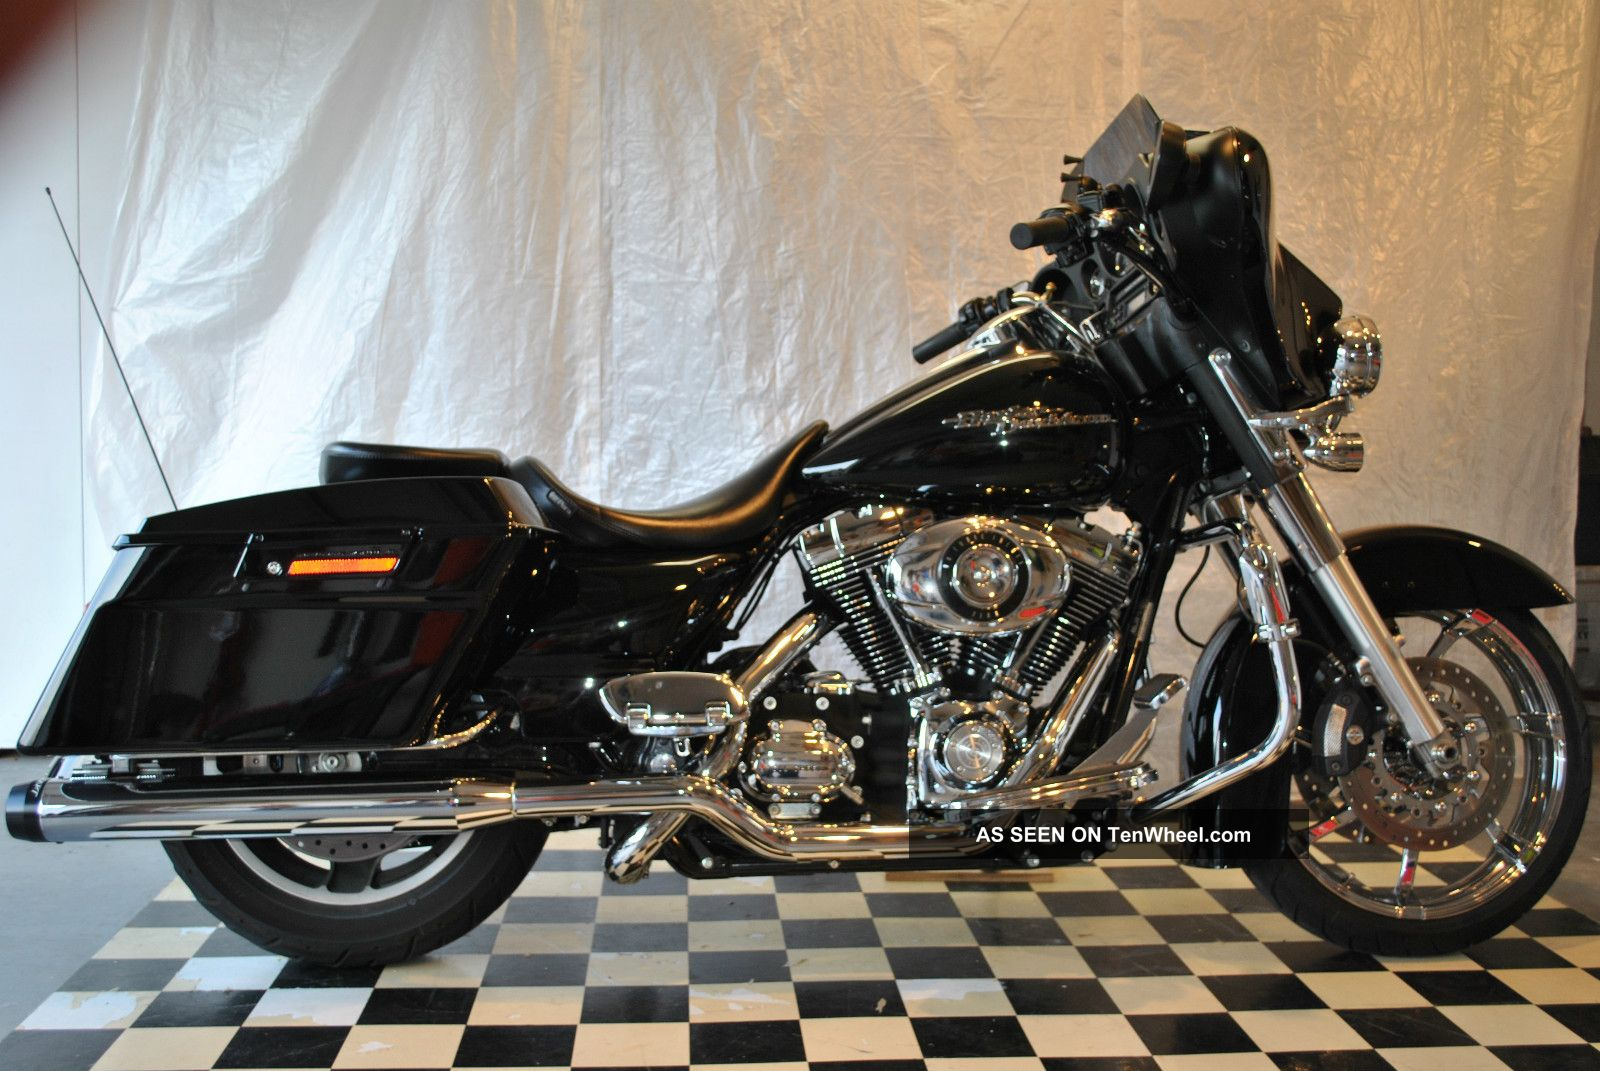 2010 Flhx Street Glide With Extras Touring photo